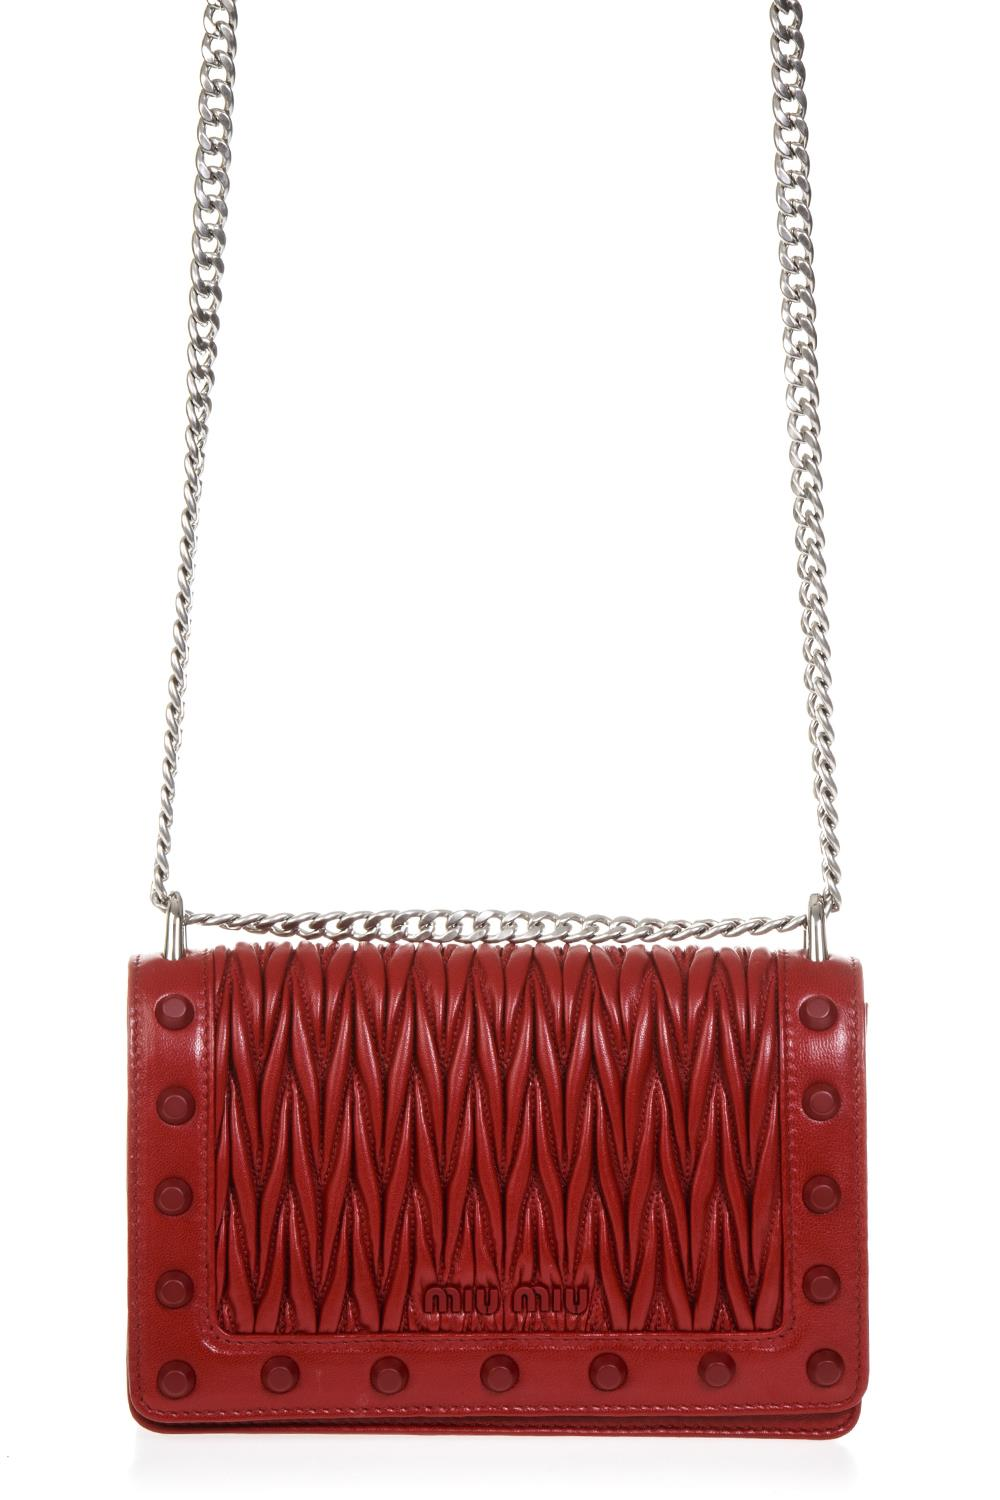 RED QUILTED LEATHER SHOULDER BAG FW 2018 - MIU MIU - Boutique Galiano e54a69bf6